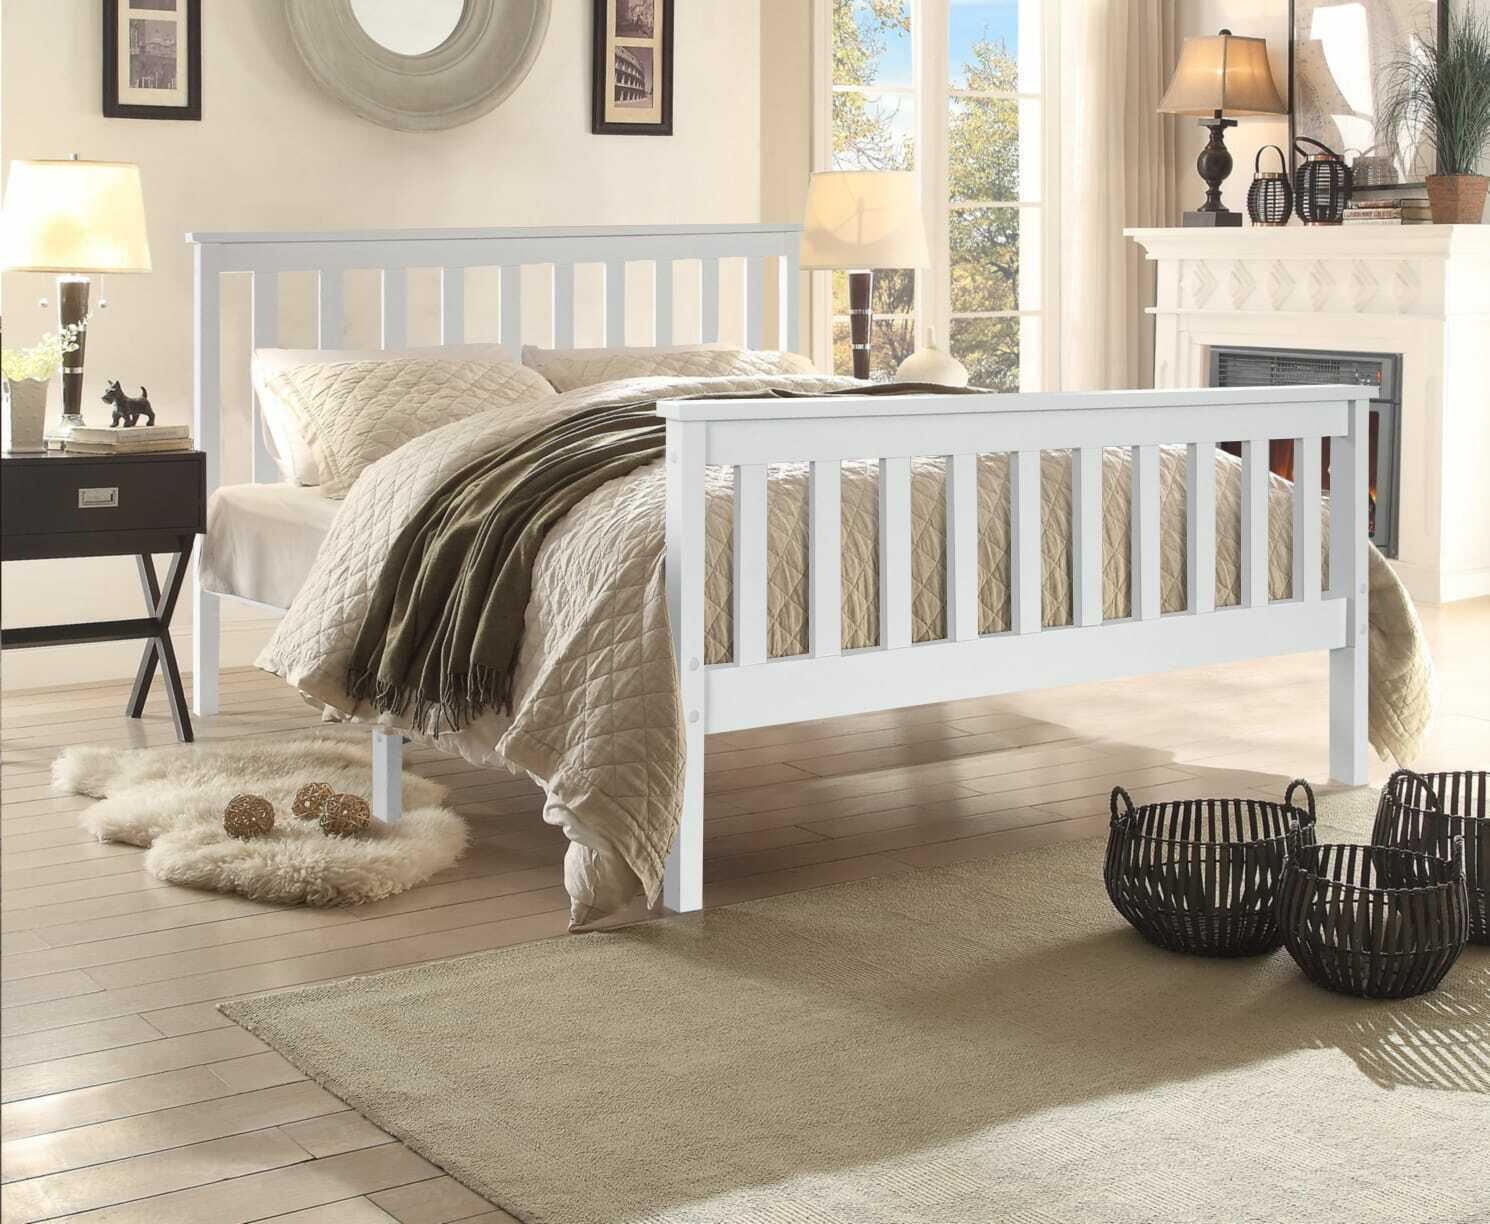 Double 4ft 6 Wooden Bed Frame White Solid Pine Wood Stylish Bedroom Furniture Ebay